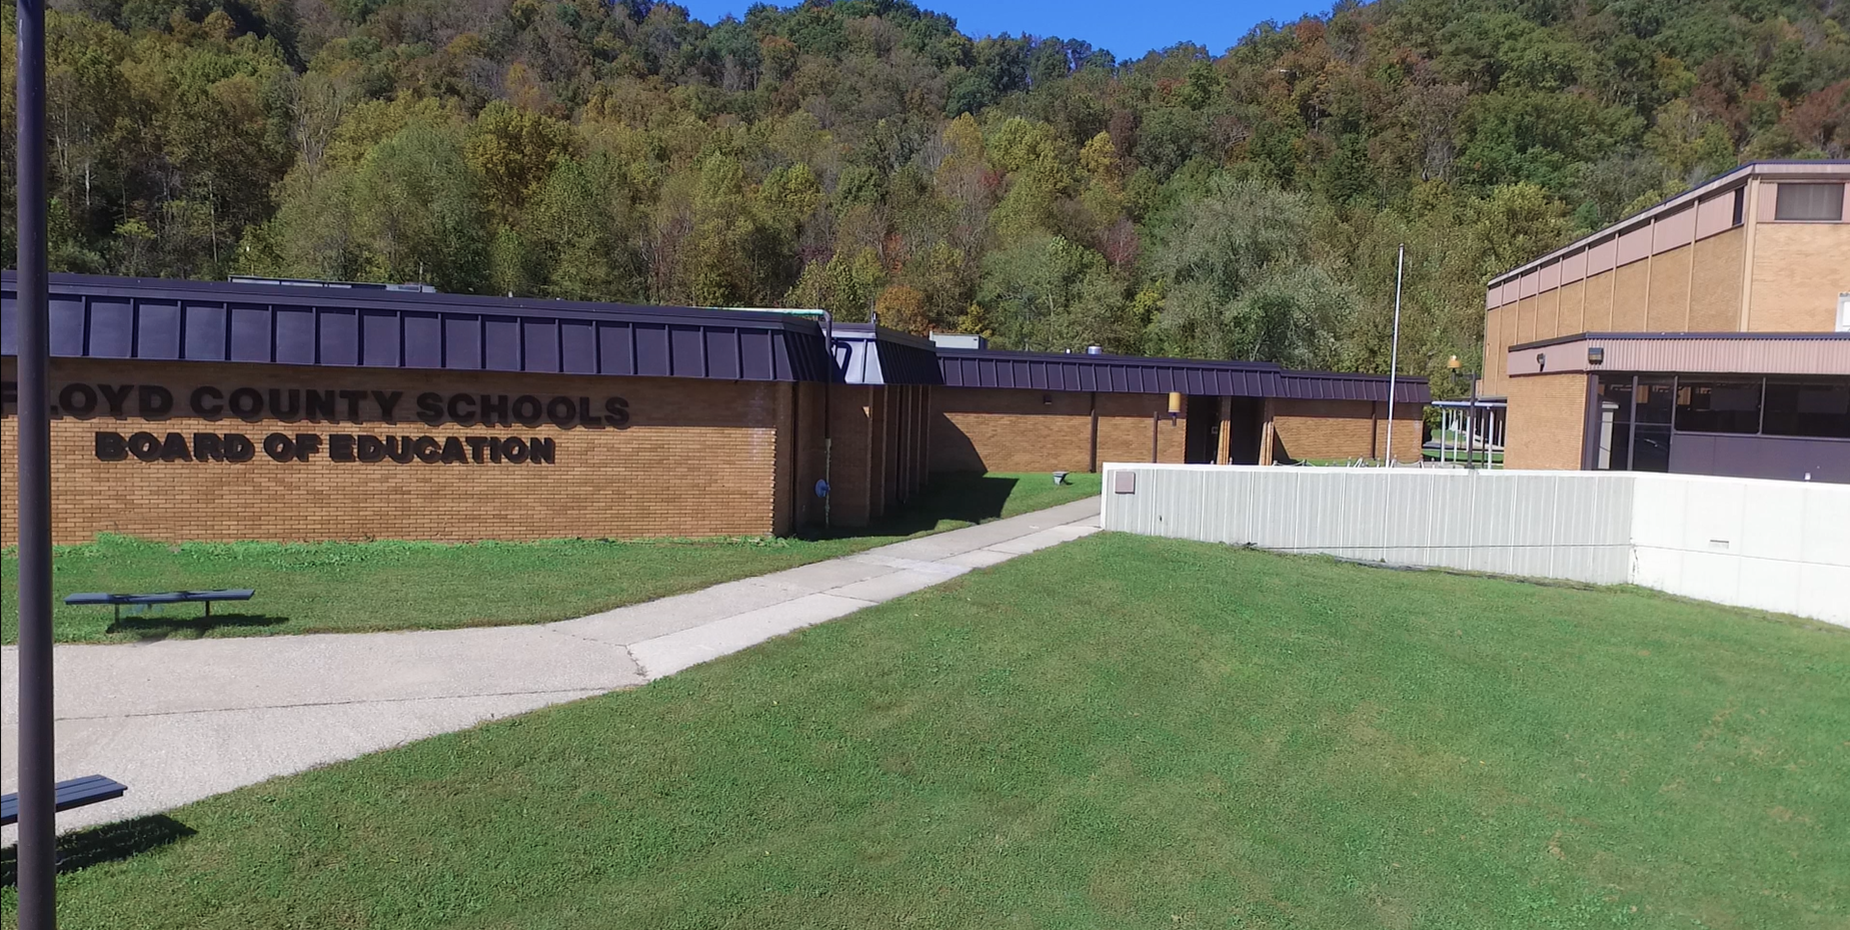 Floyd County Board of education building photo.